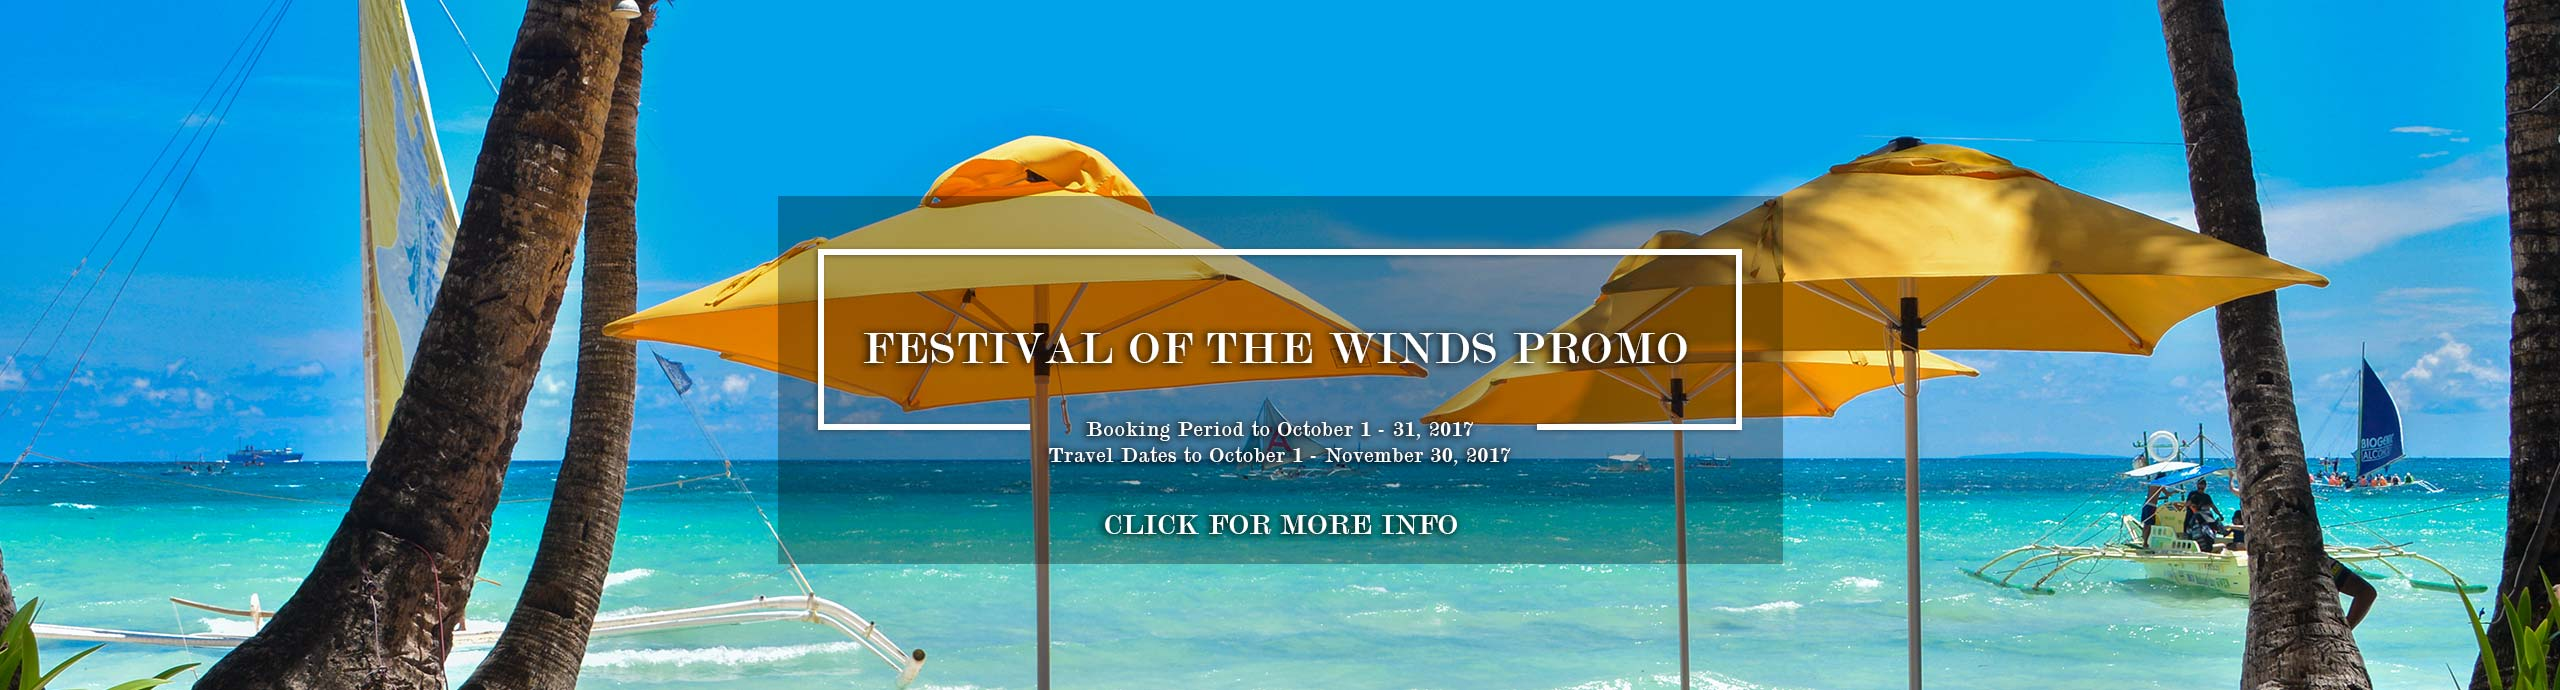 festival-of-the-winds-promo-site-banner